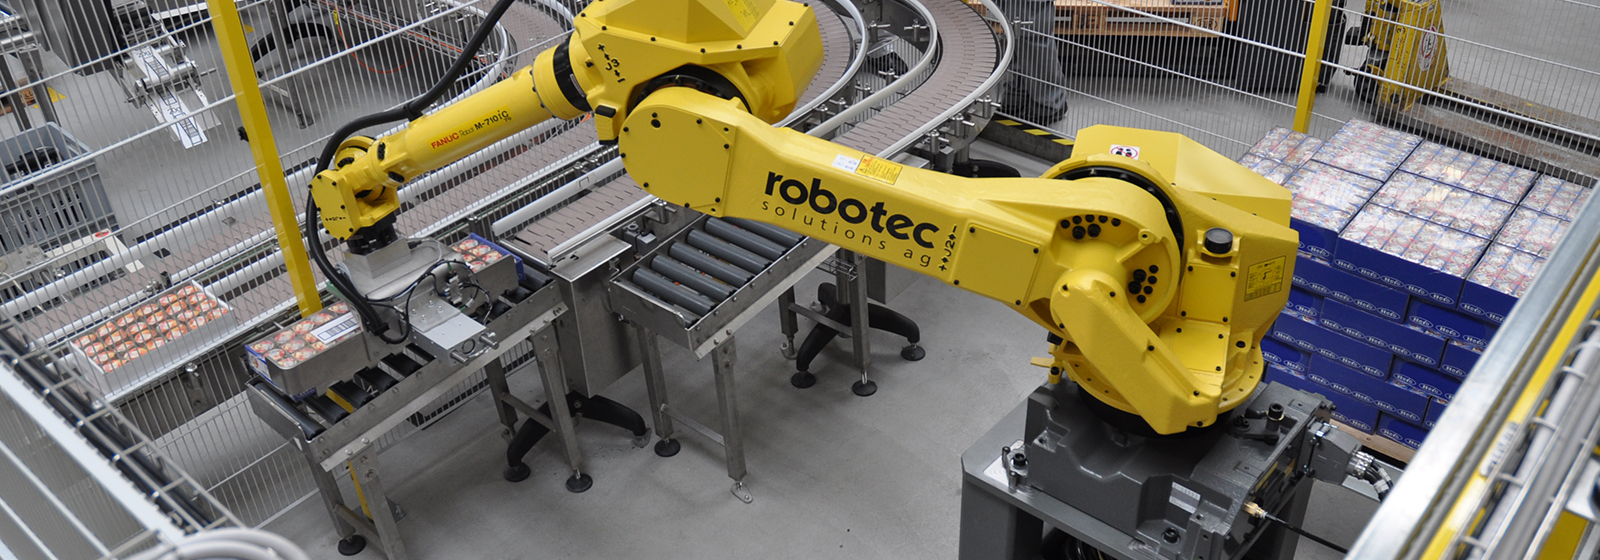 Robot M-710iC placing food carriers onto conveyor belt